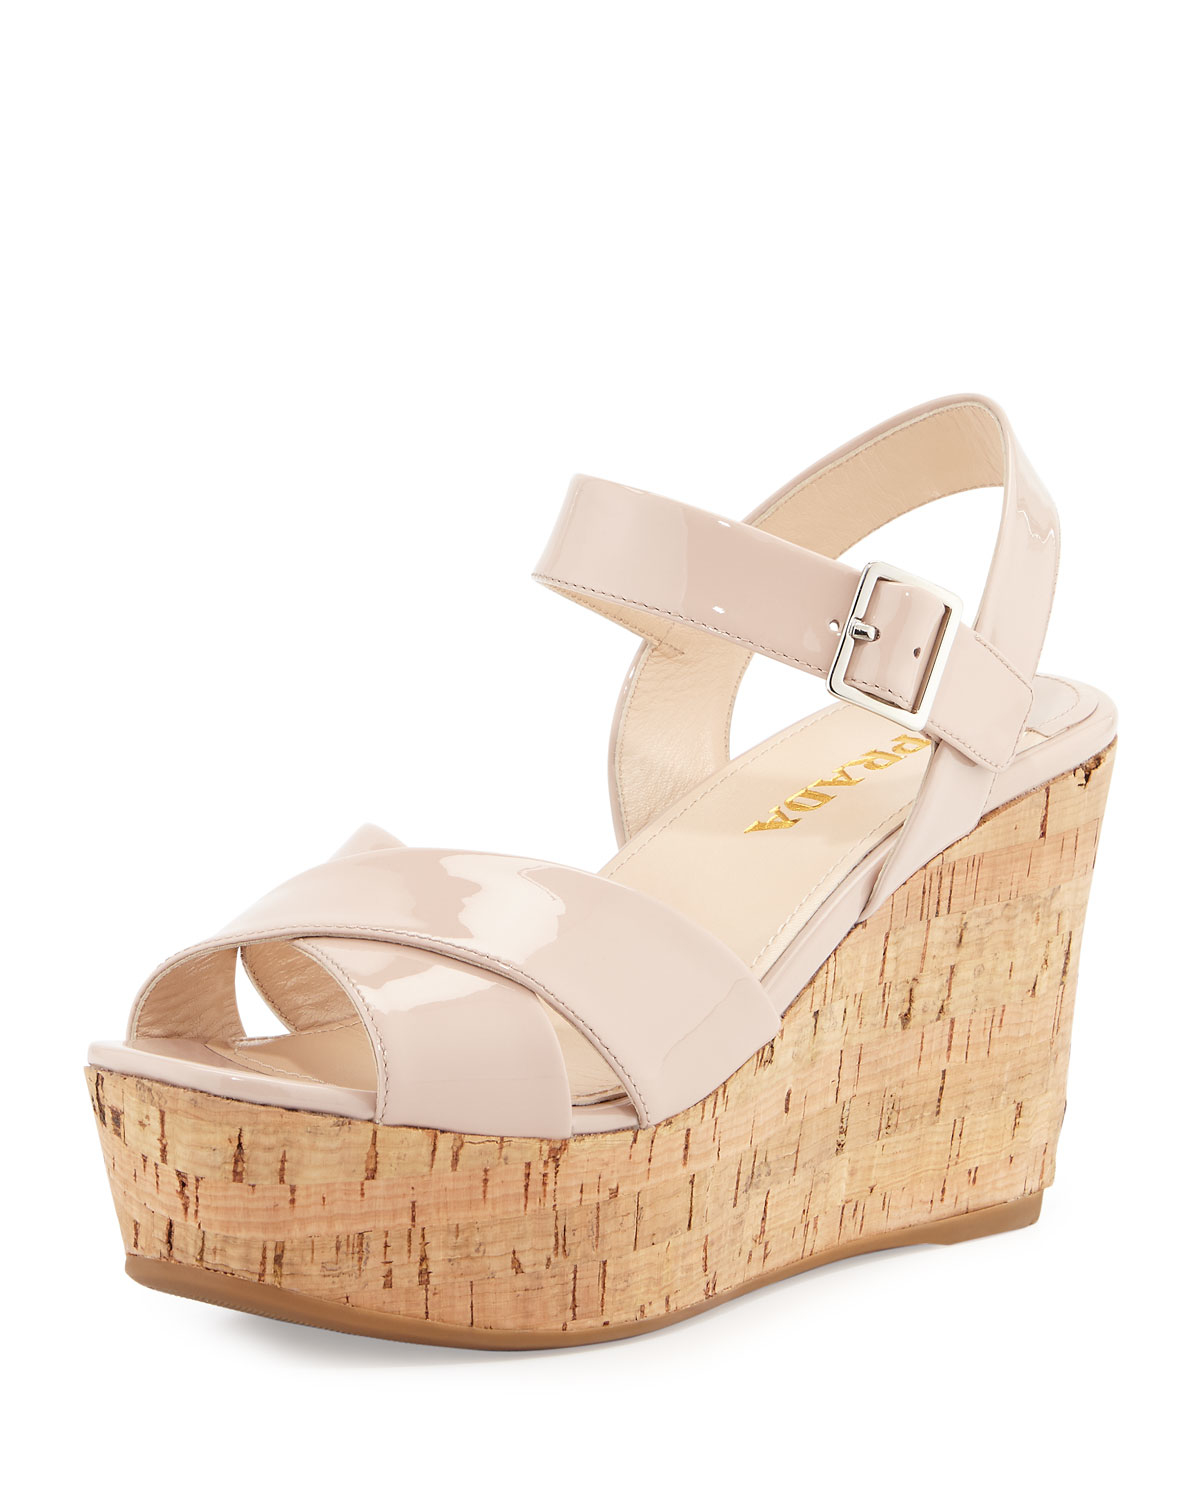 Prada Patent Leather Cork Wedge Sandal in Khaki (NATURAL) | Lyst